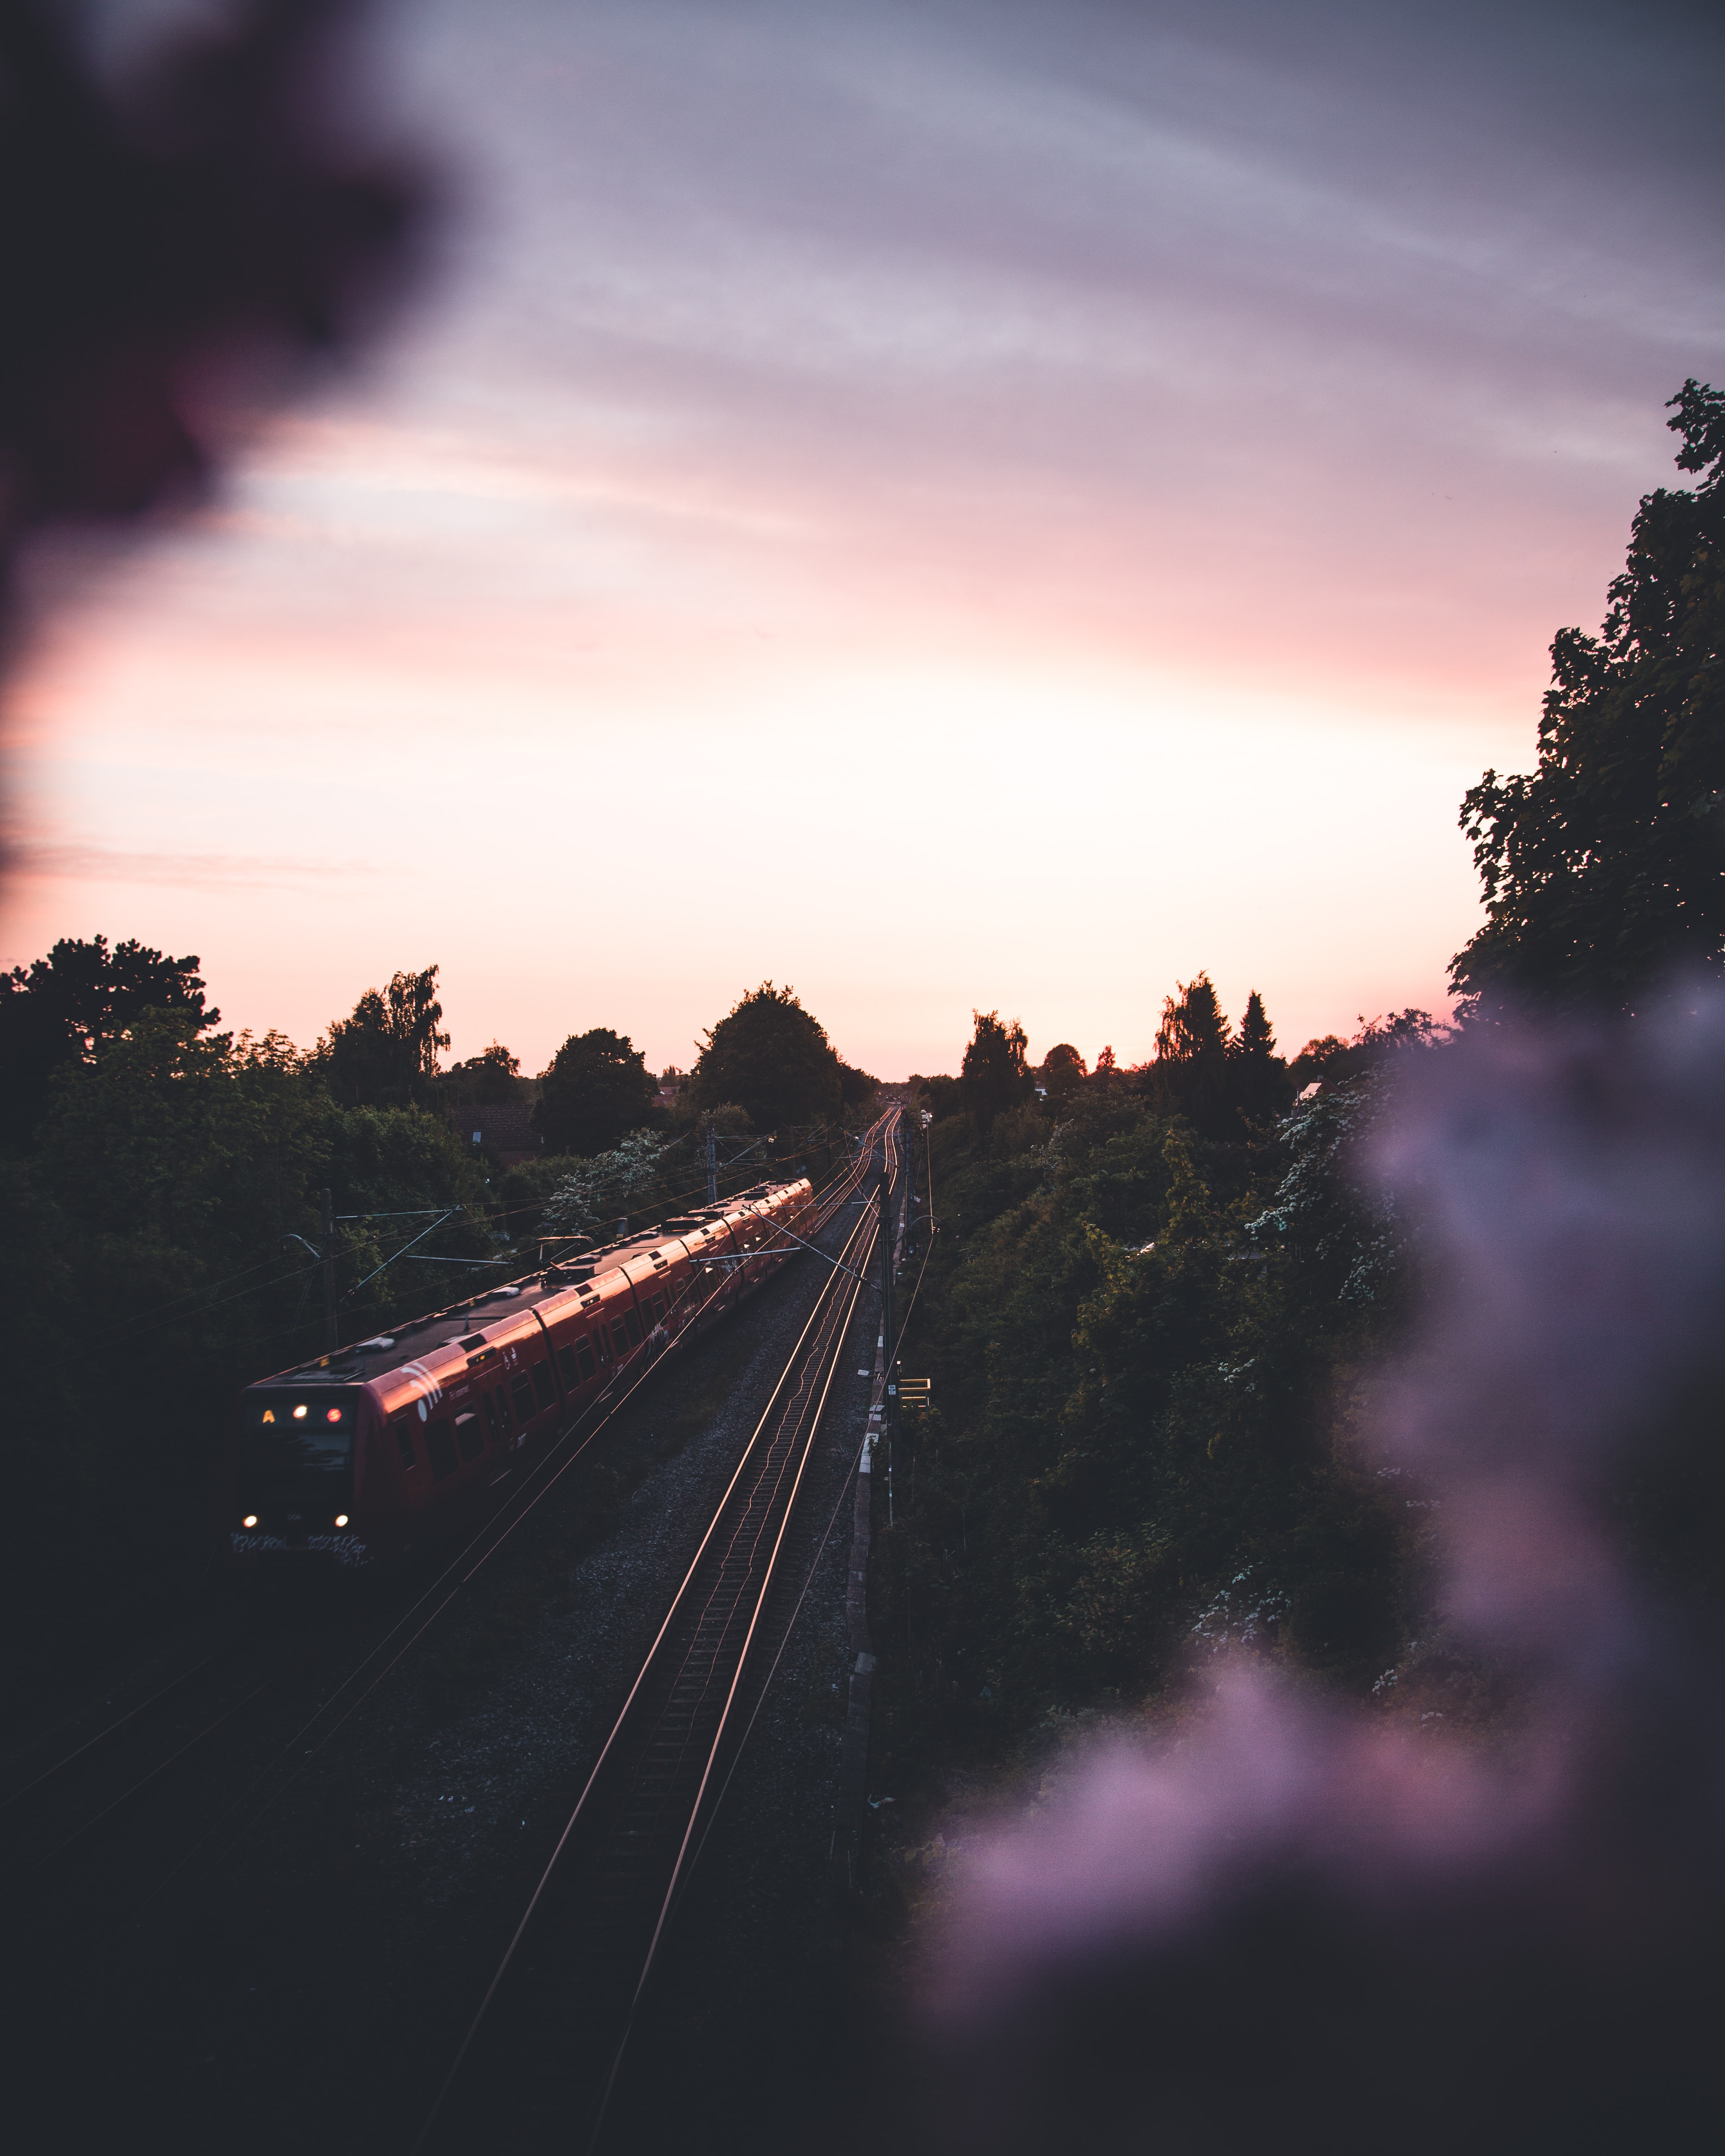 red train between green trees at golden hour